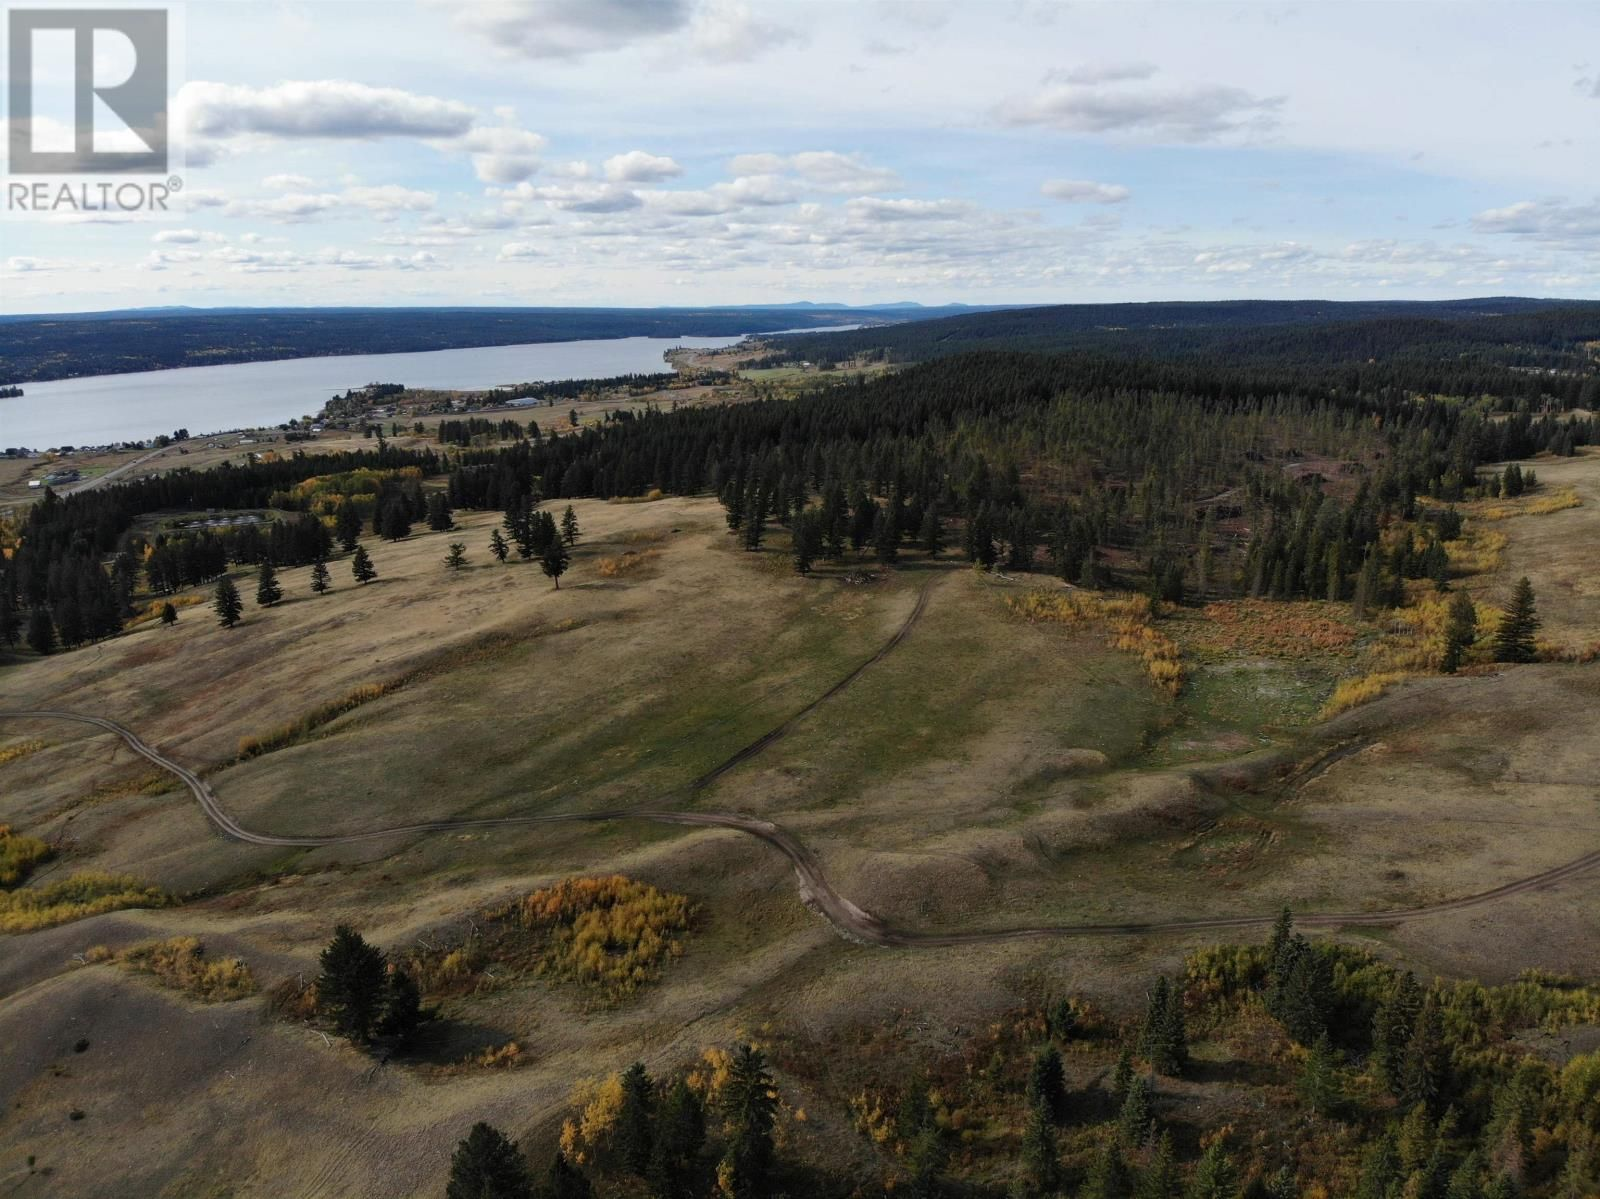 Main Photo: DL 787 S CARIBOO 97 HIGHWAY in Lac La Hache: Vacant Land for sale : MLS®# R2622794